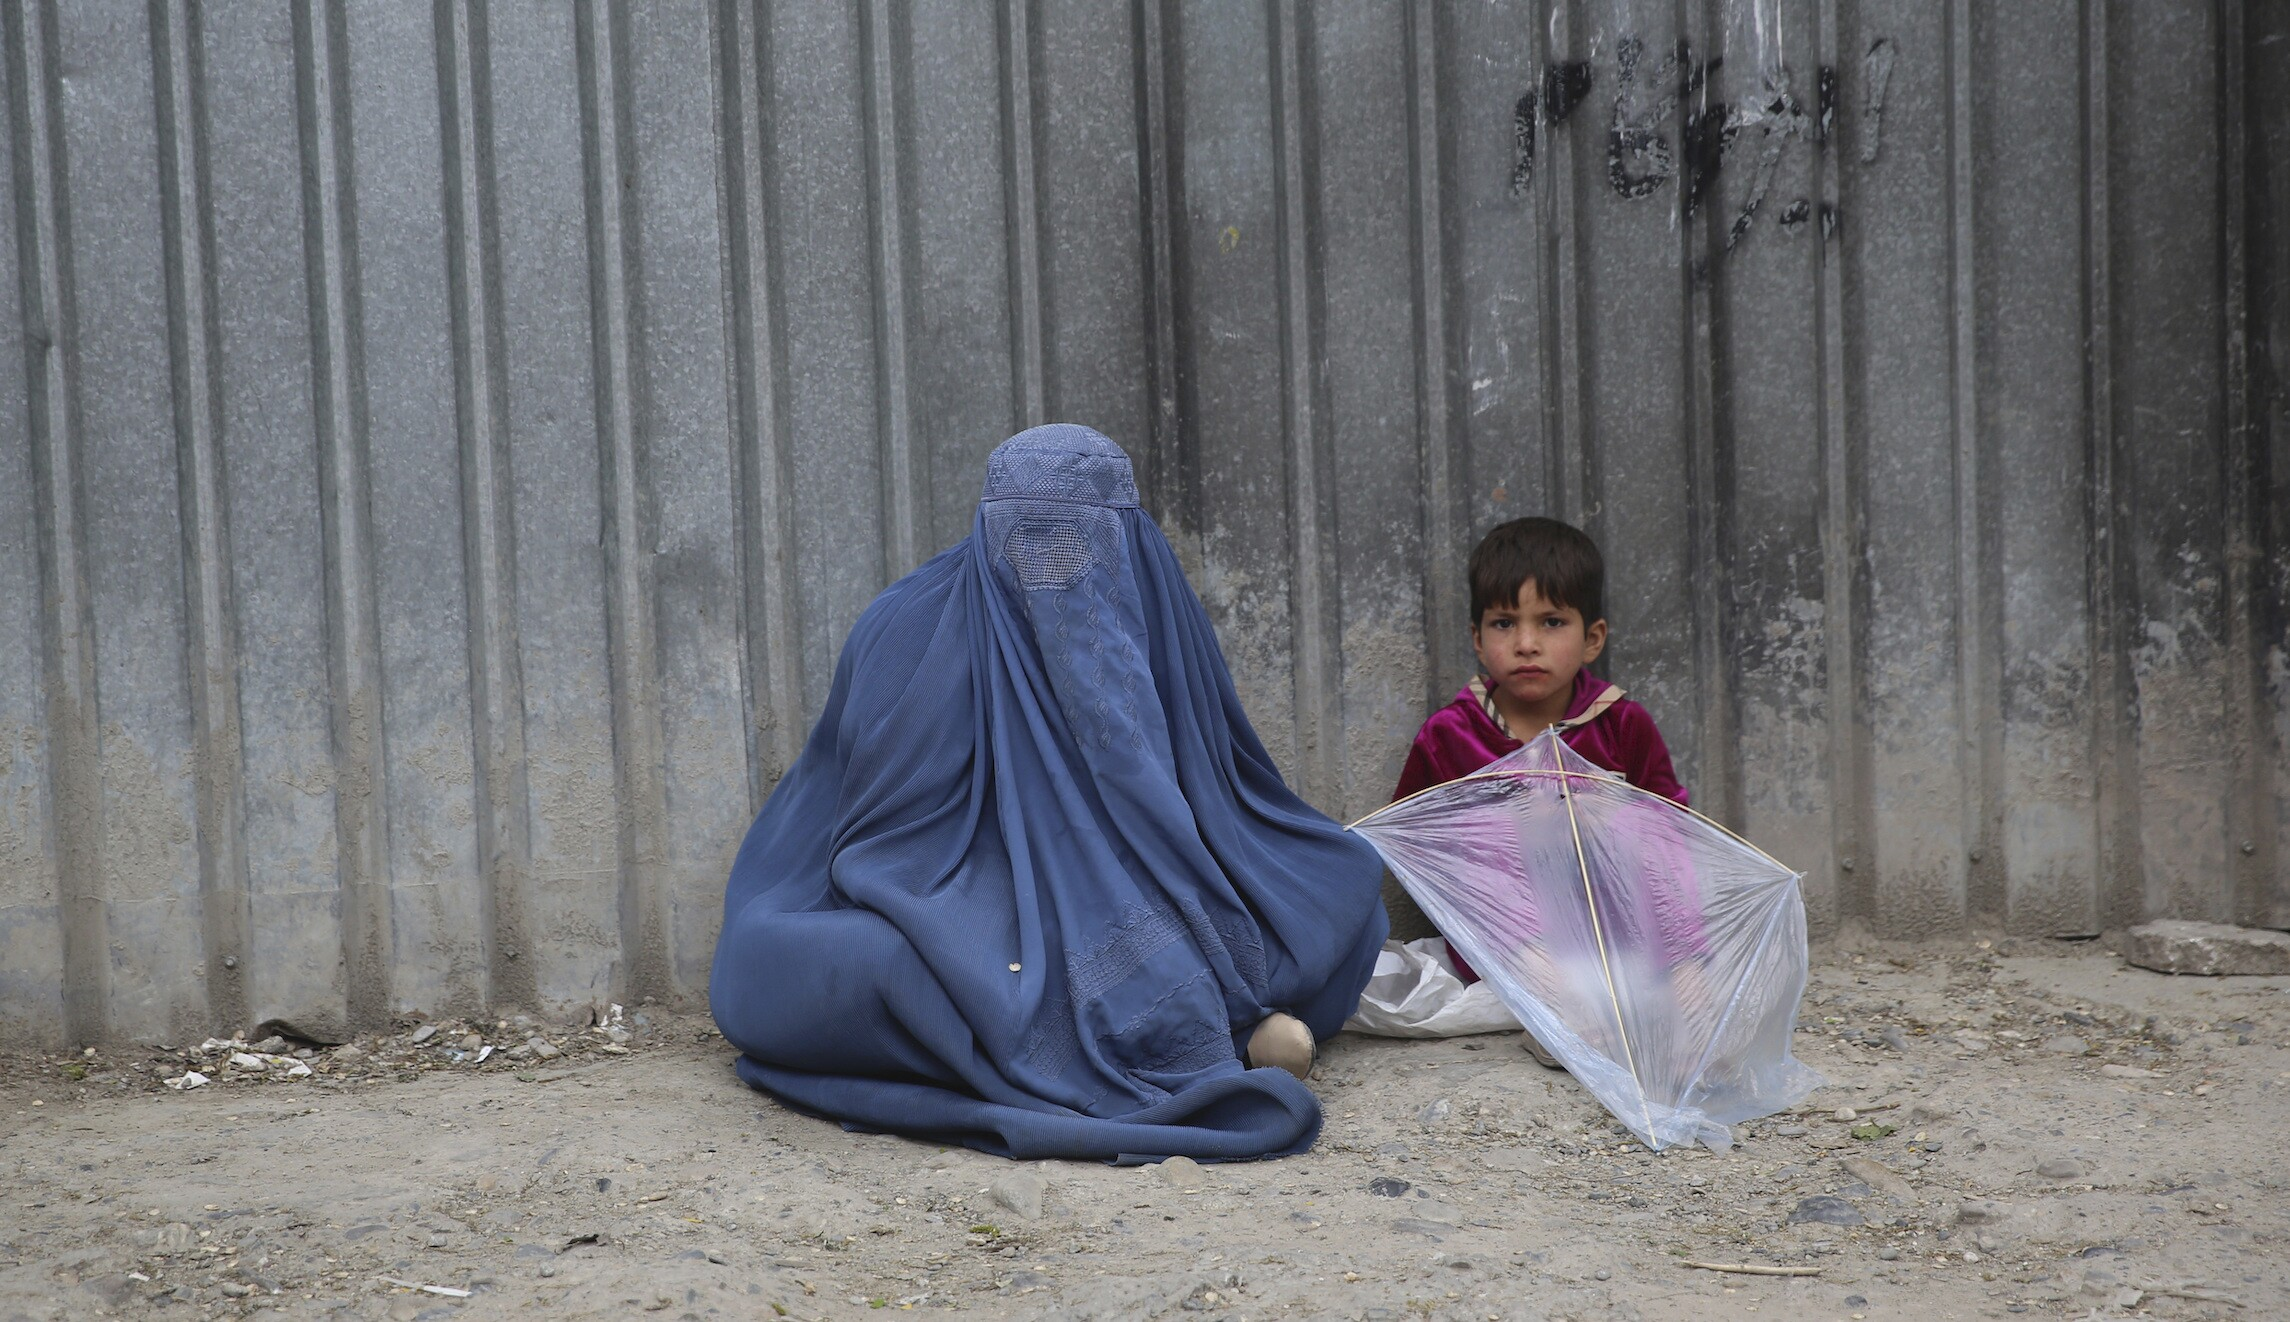 In this May 2, 2020 file photo, a woman waits to receive alms with her daughter during the Muslim fasting month of Ramadan, in Kabul, Afghanistan.